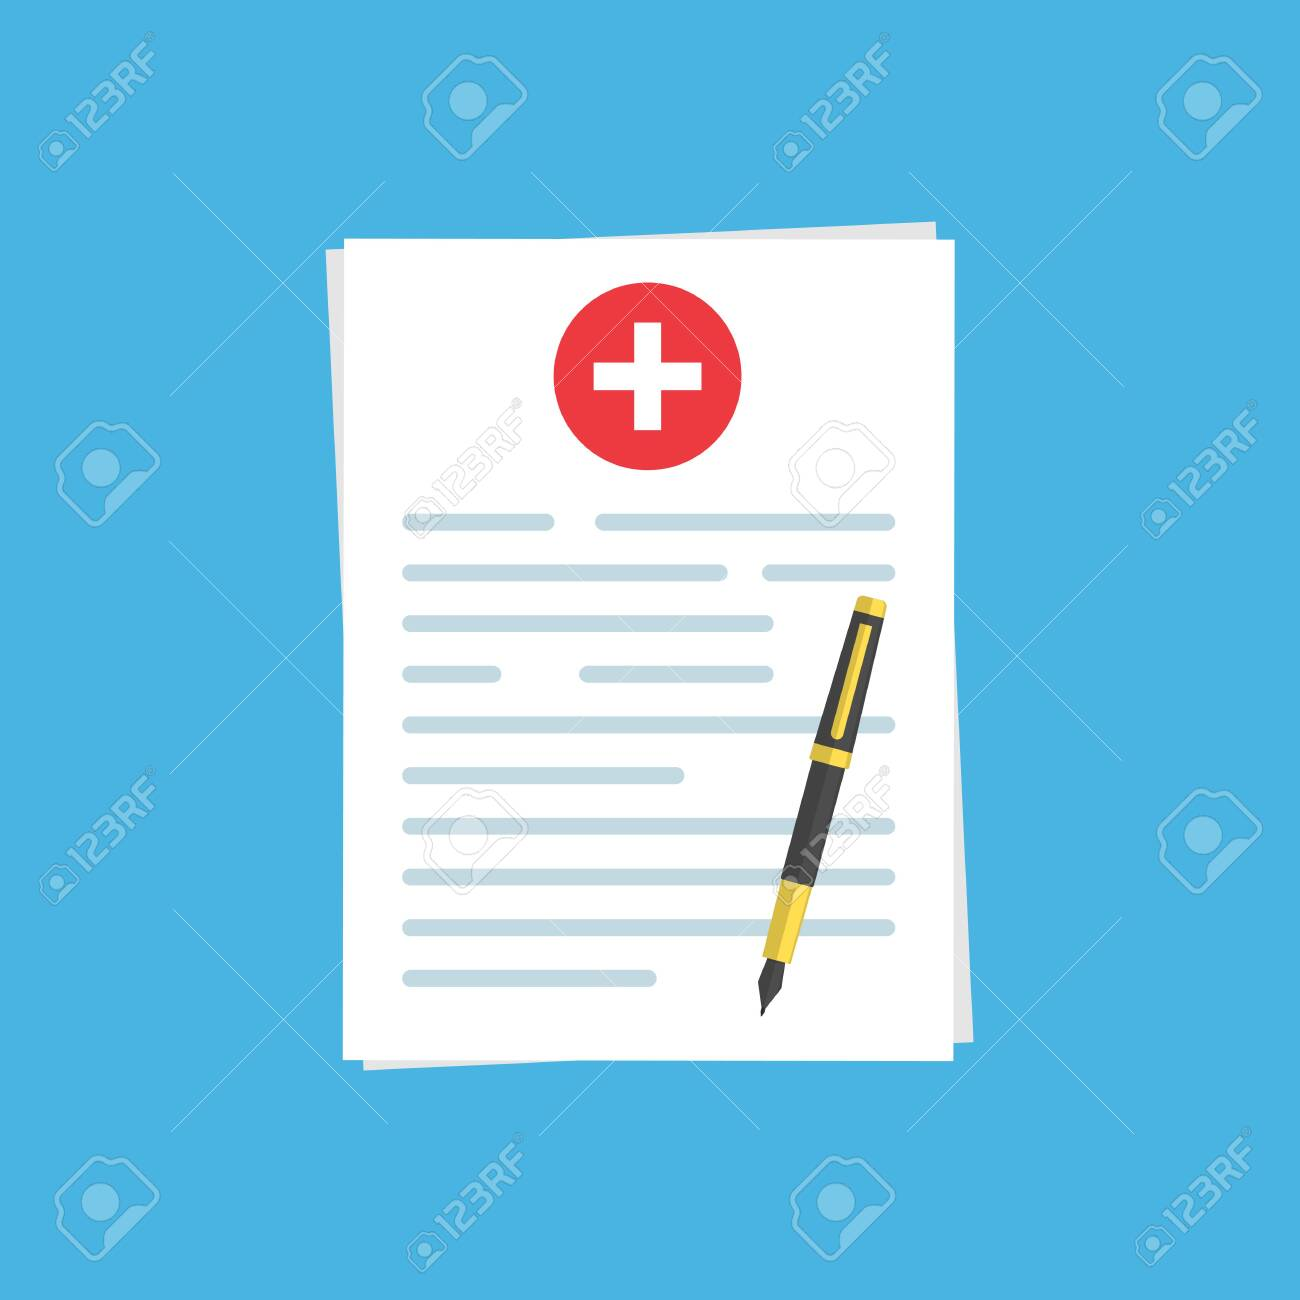 medical insurance document or contract and ballpoint pen. Medical report.stock vector illustration isolated on blue background. - 138421804